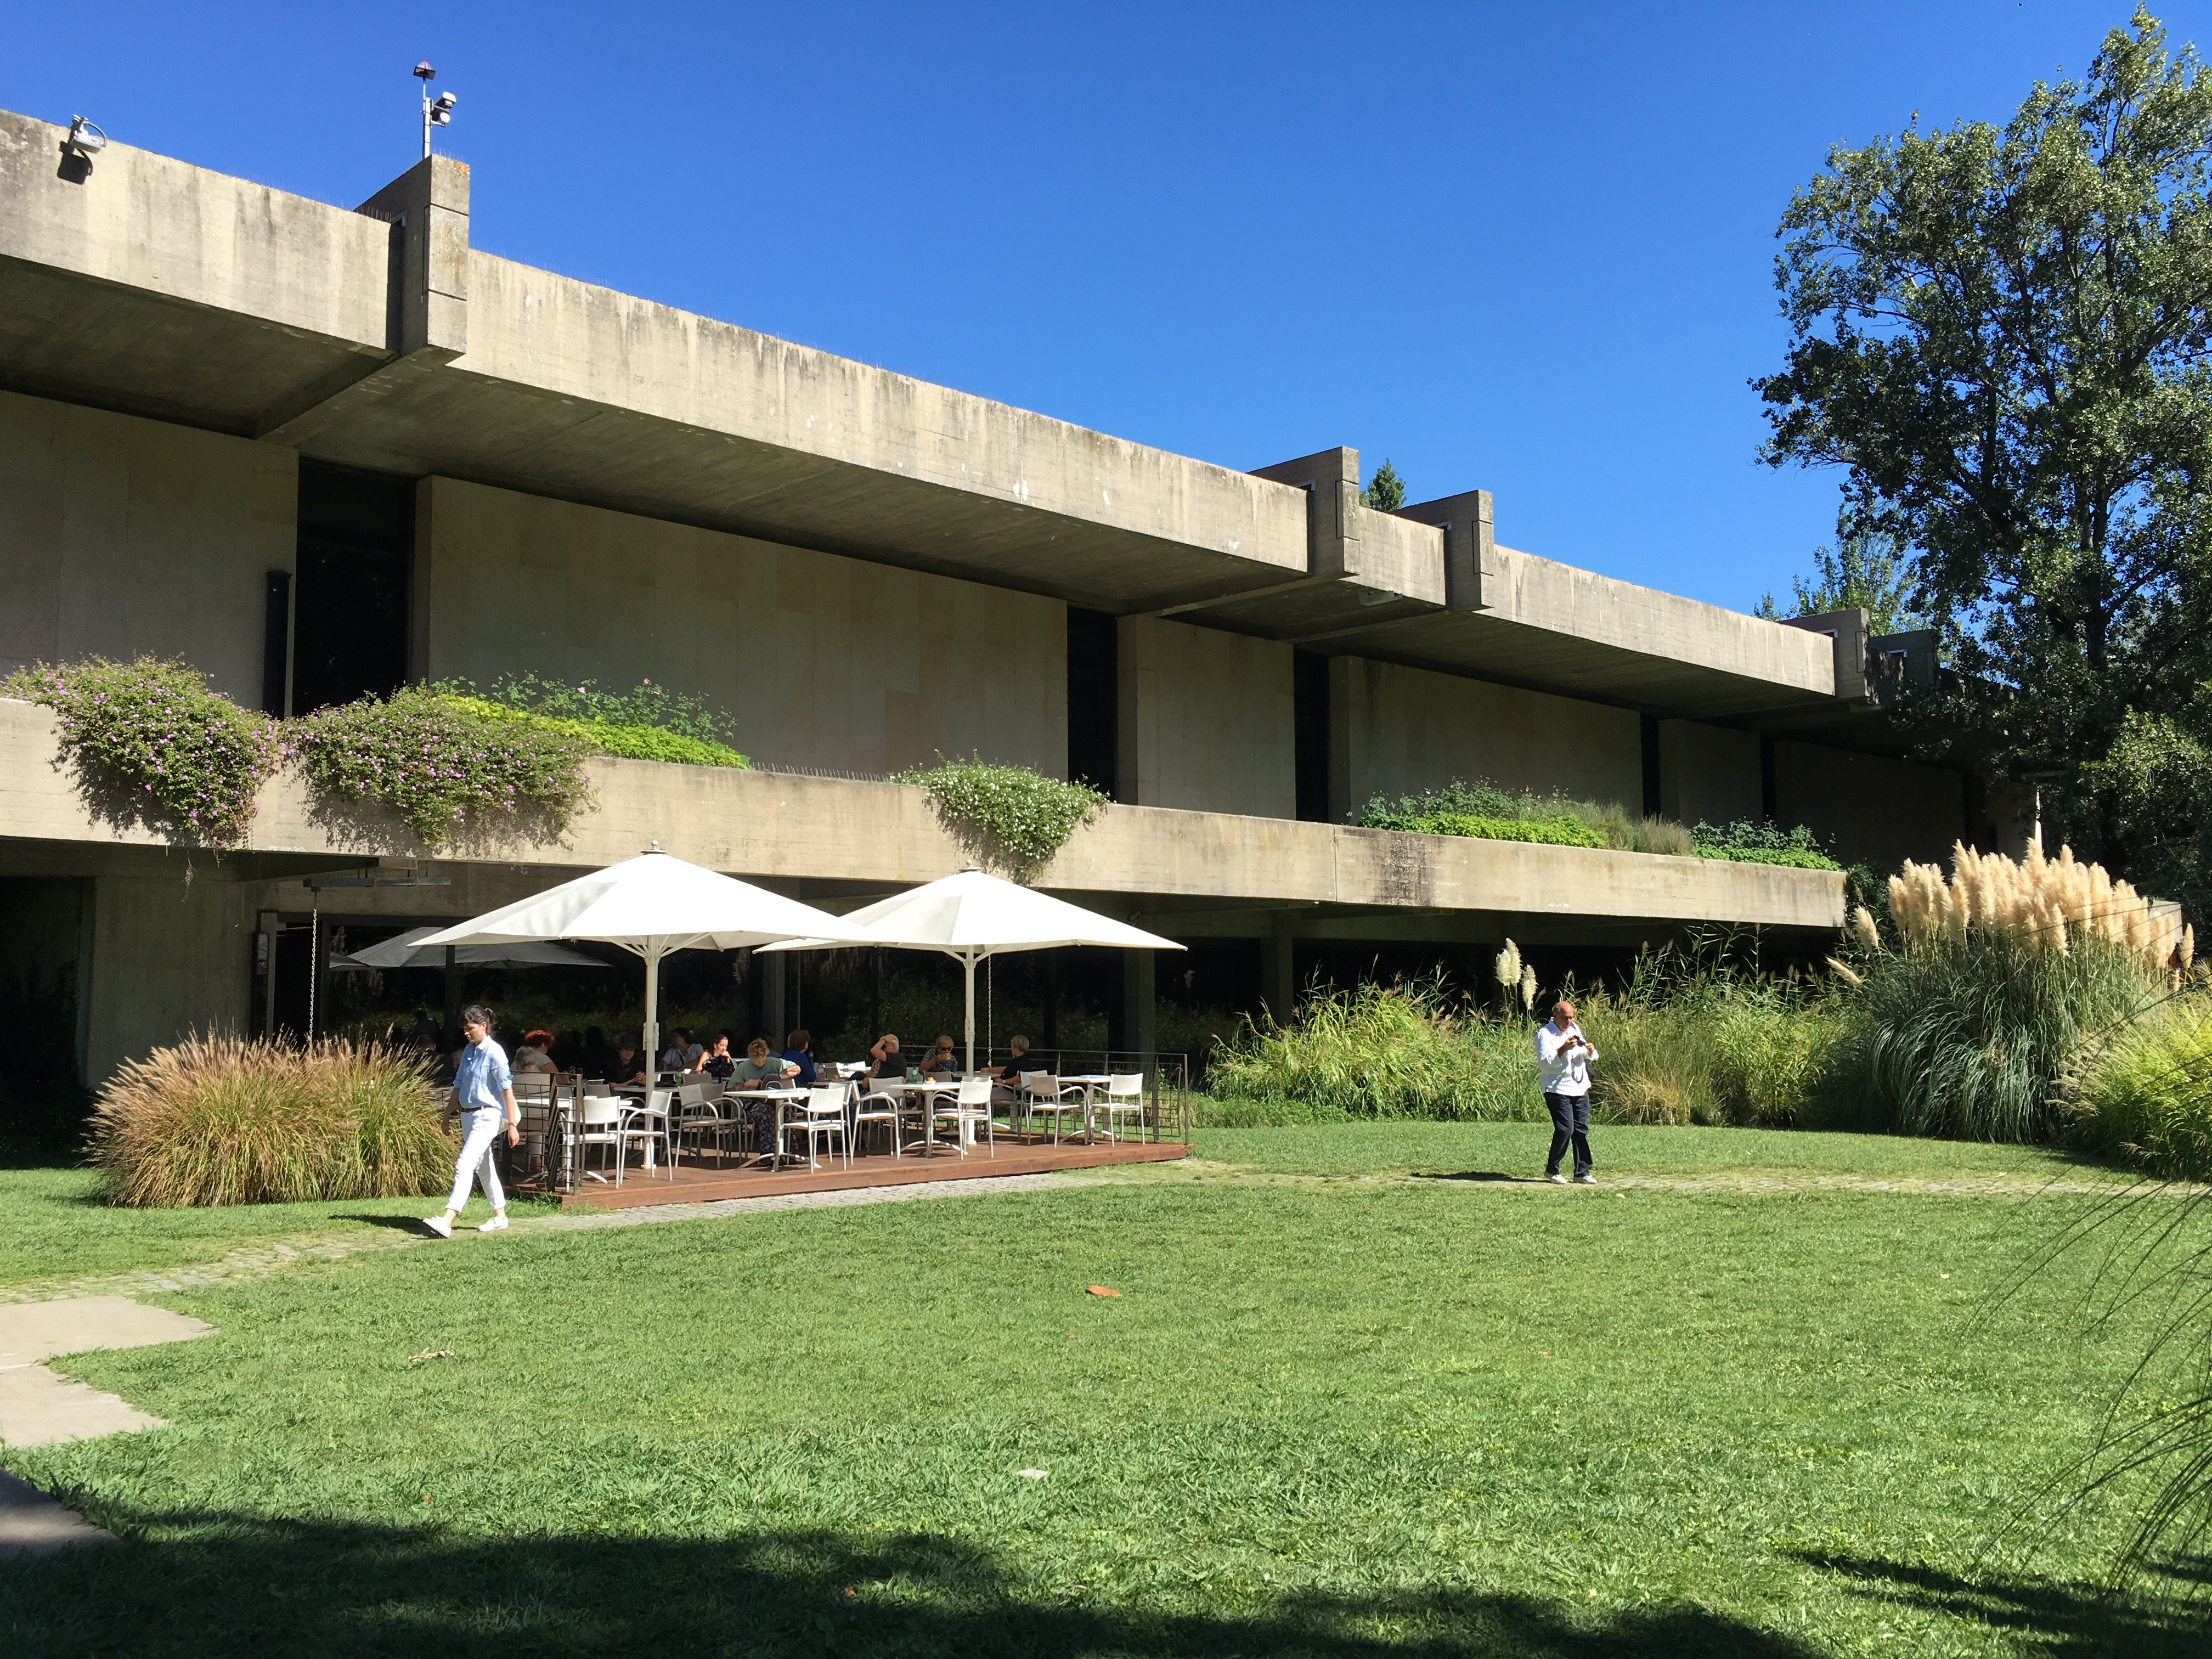 Outdoor seating in Gulbenkian